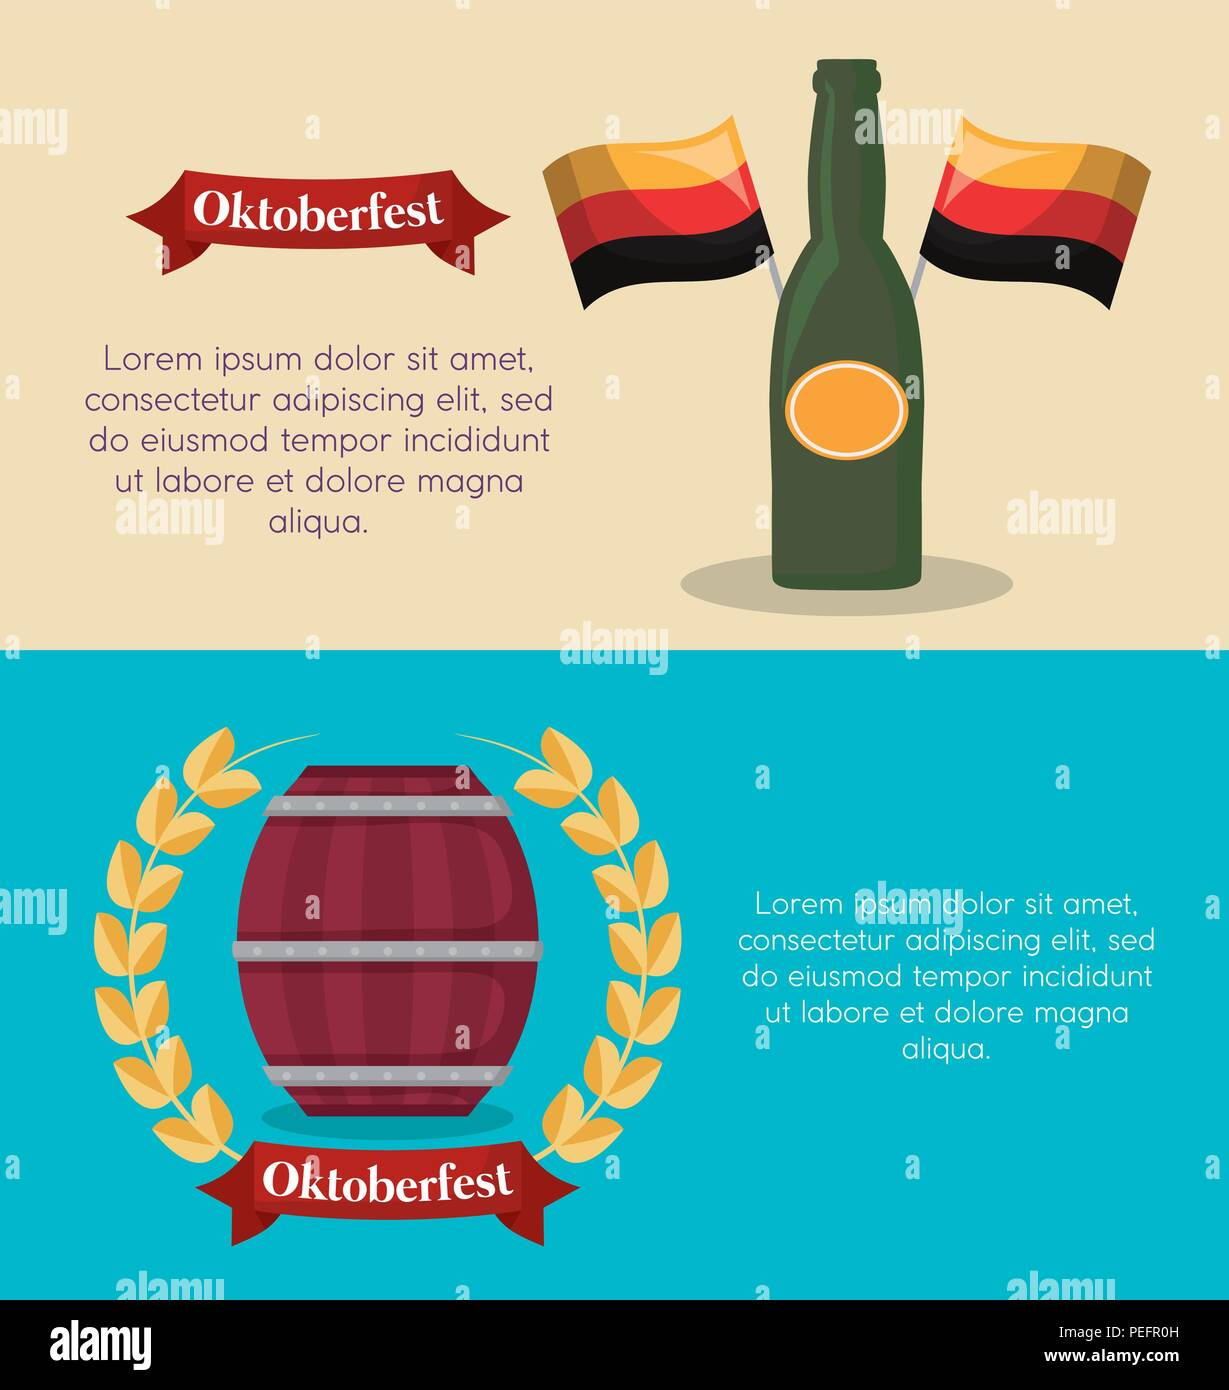 infographic of oktoberfest concept with germany flags and beer bottle icon, colorful design. vector illustration - Stock Image